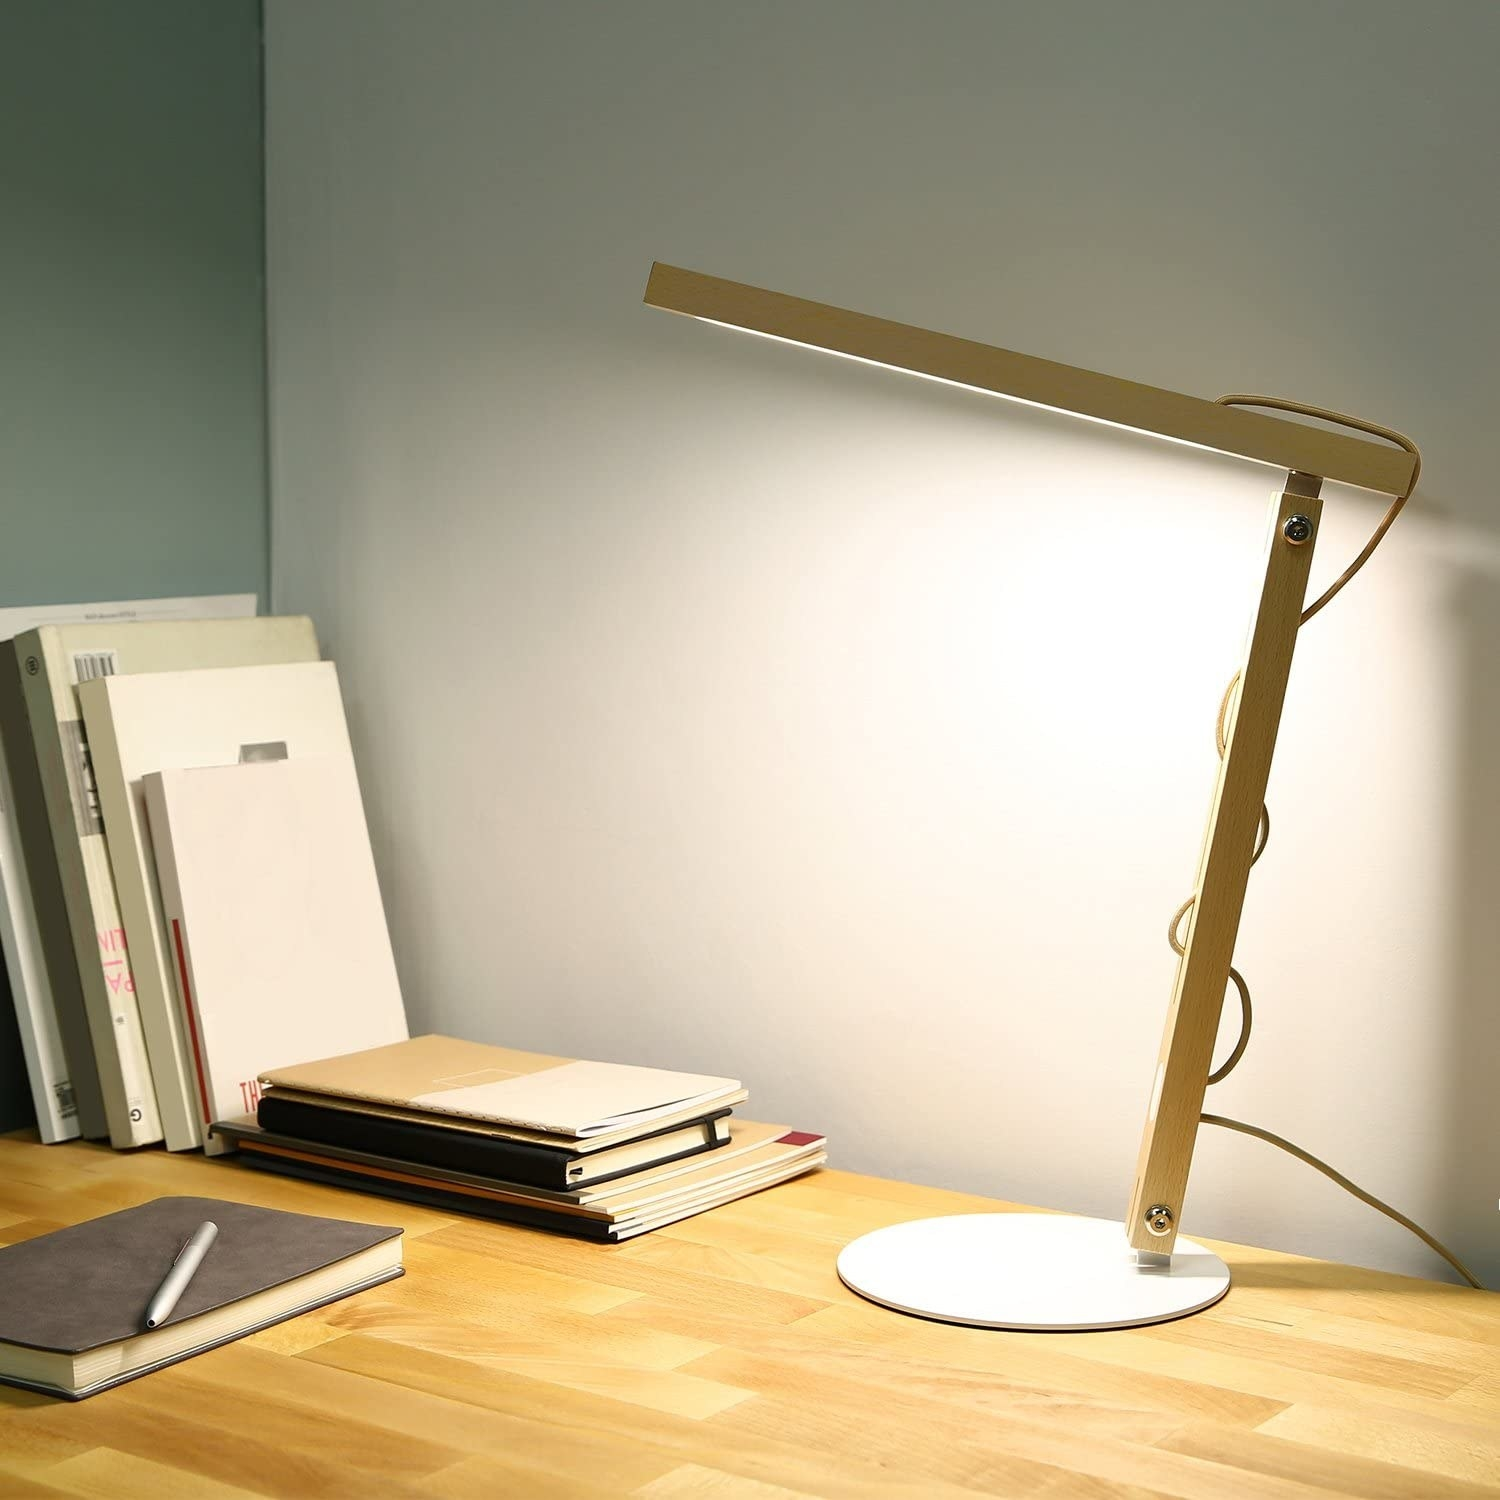 Wooded desk lamp with white circular base and cord running through the arm